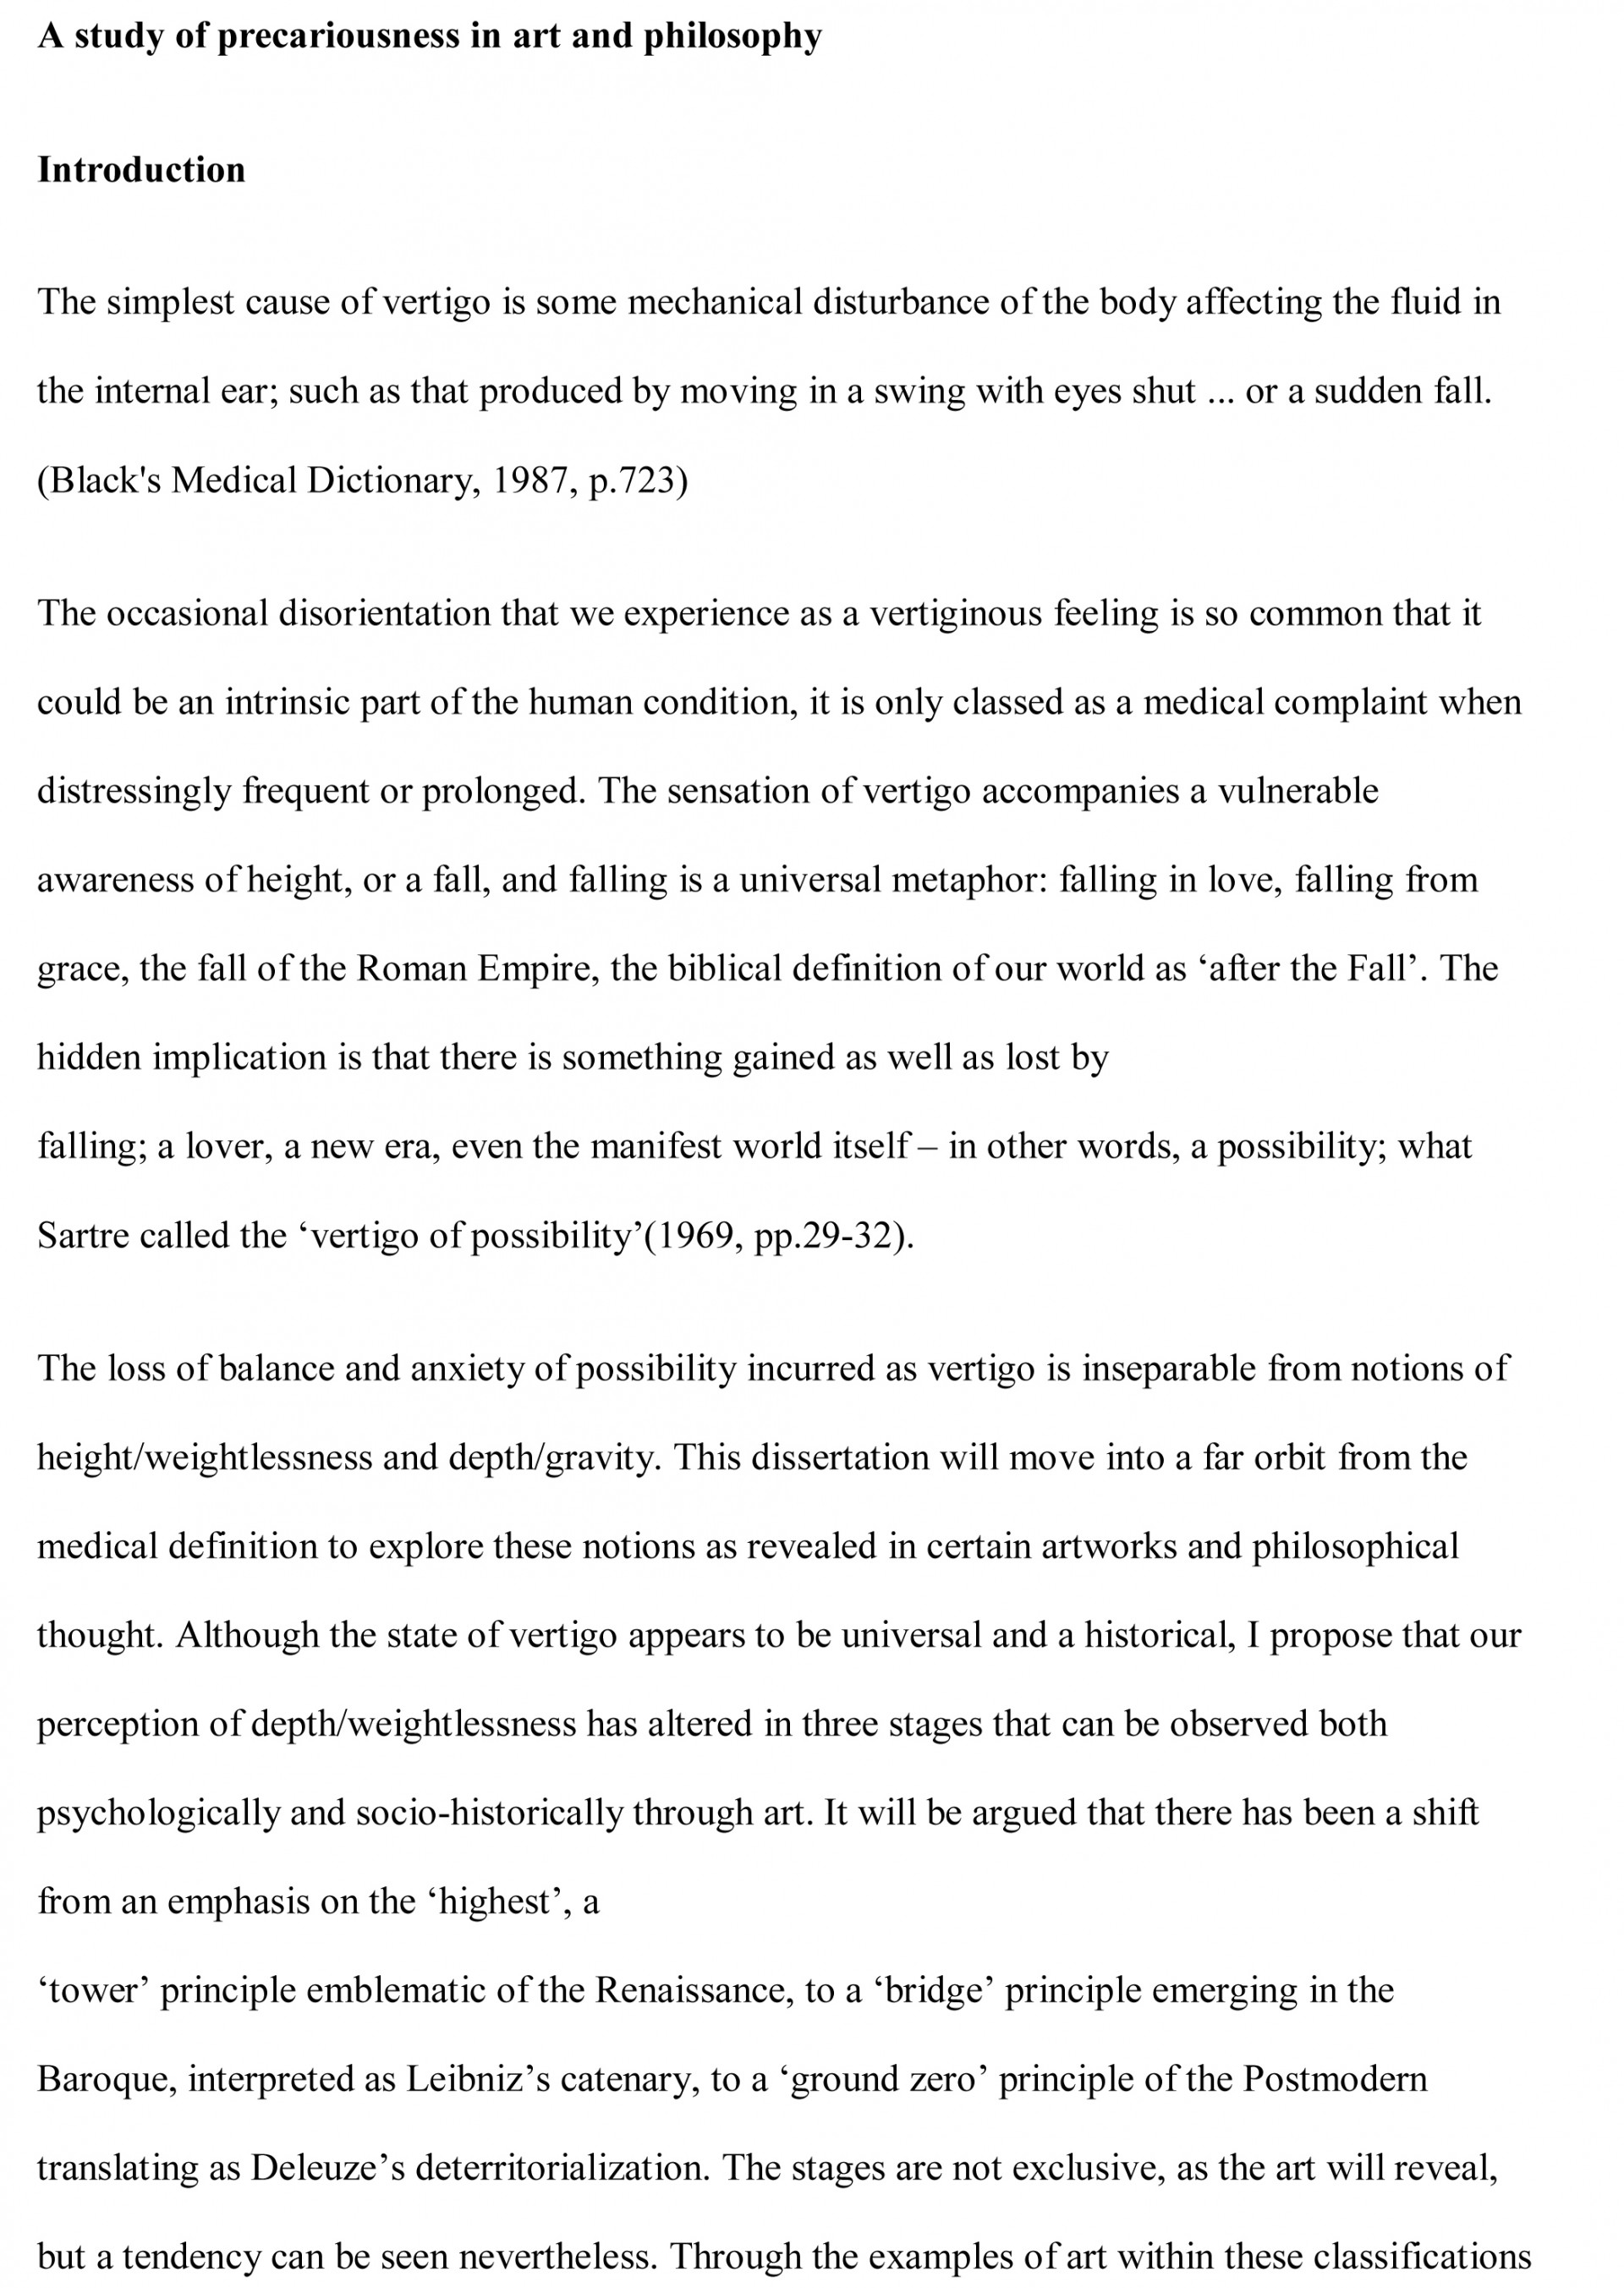 001 Essay Topics About Art Example Coursework Free Formidable Related To Artificial Intelligence Philosophy Of Argumentative Performing Arts 1920